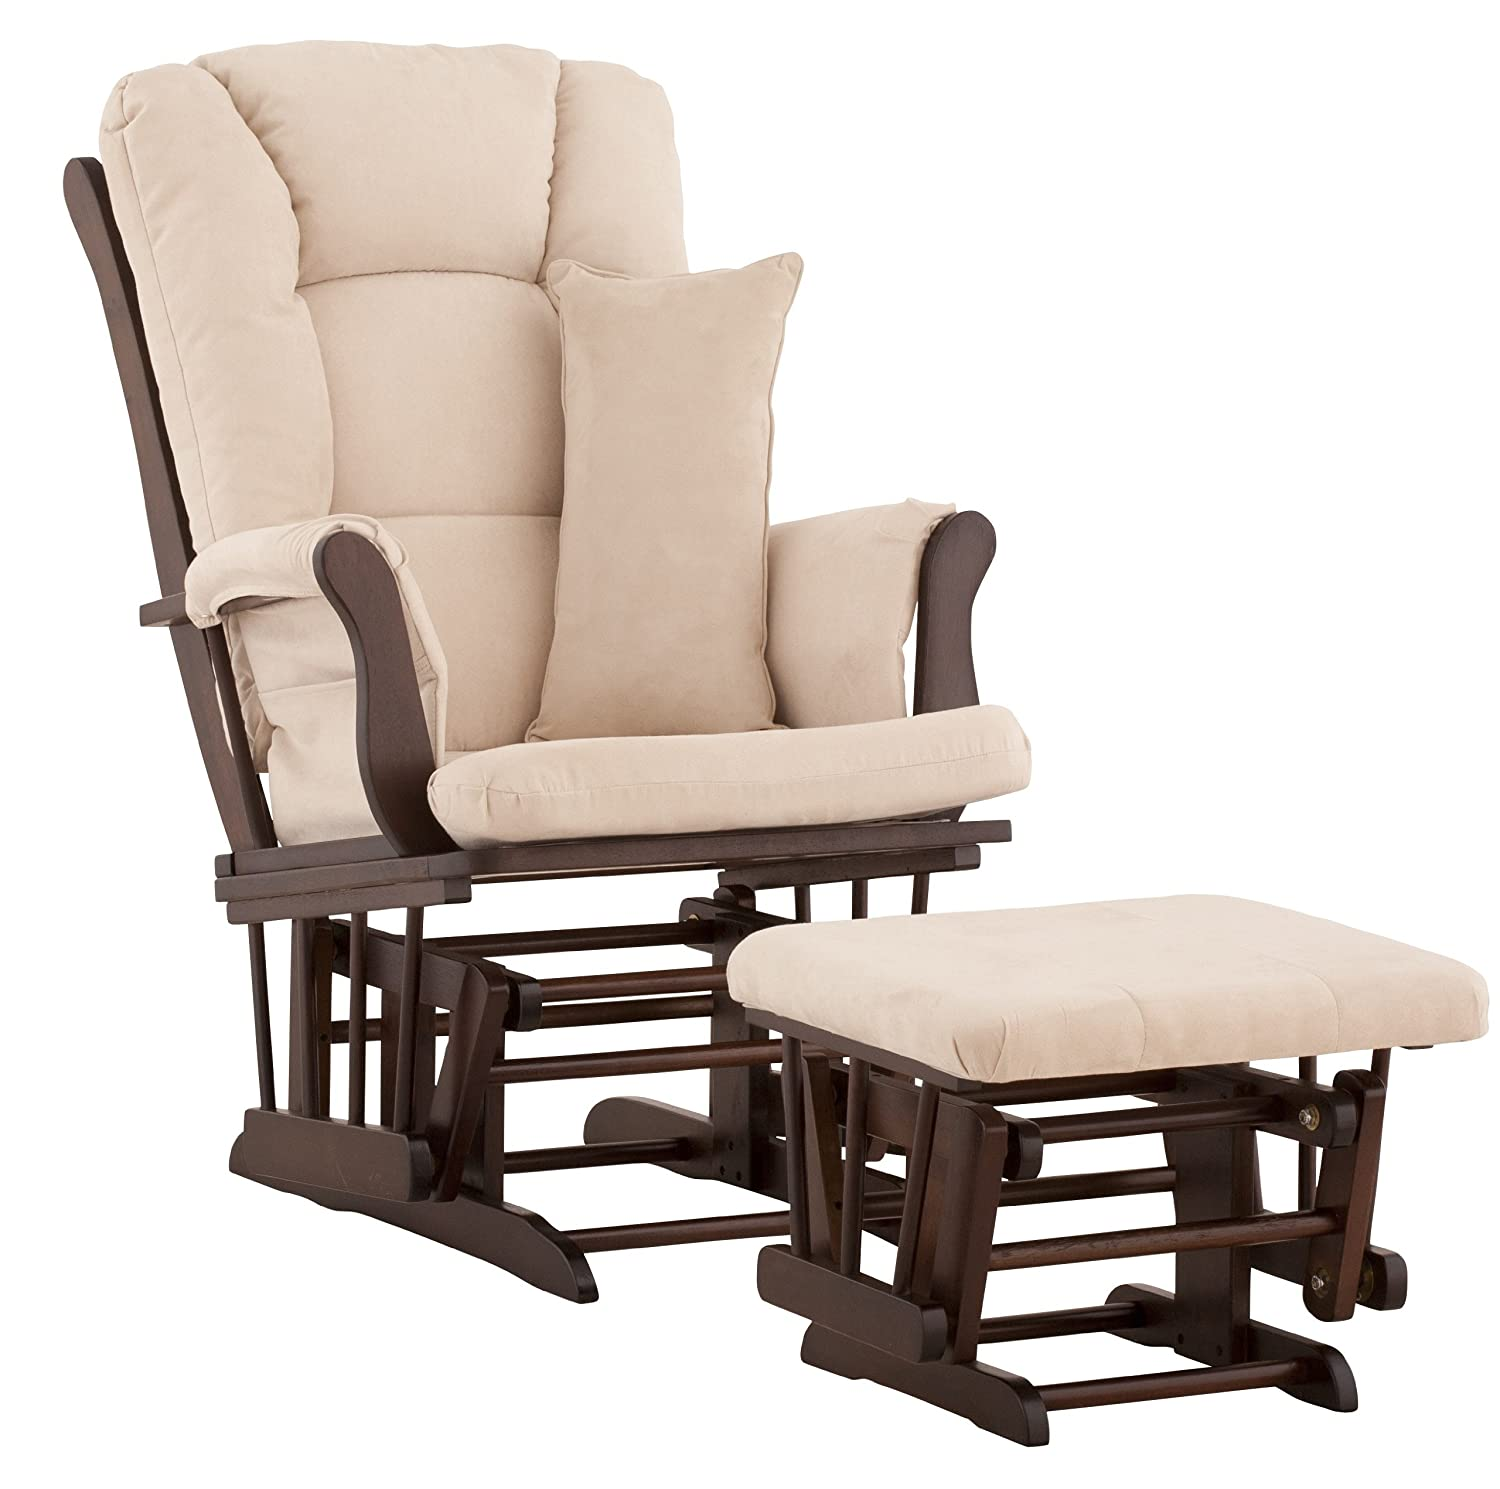 Storkcraft Custom Tuscany Glider and Ottoman, Espresso/Beige Stork Craft 06554-519